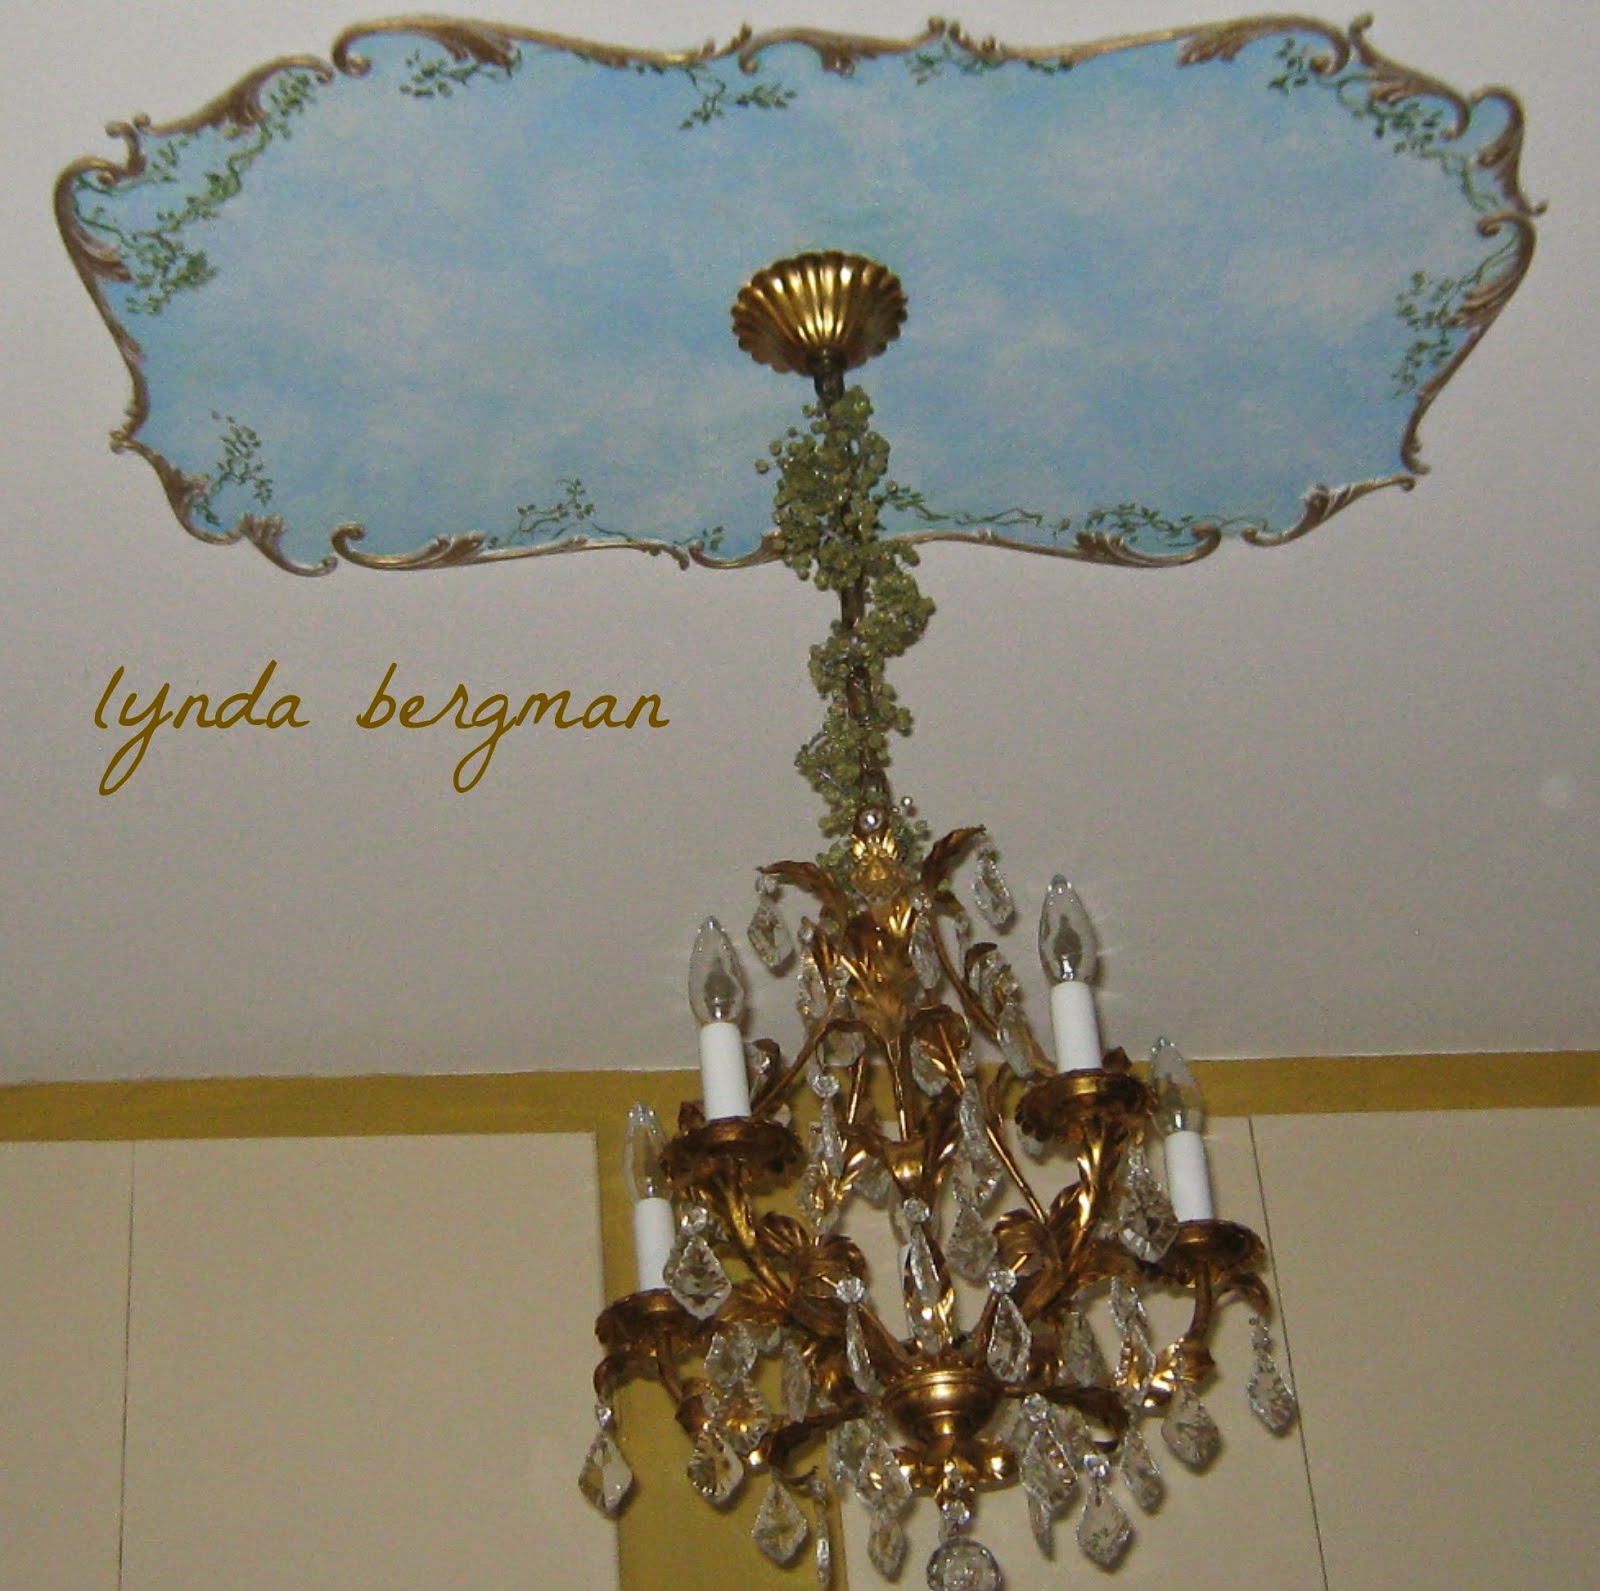 Lynda Bergman Decorative Artisan shared her Designing Painted Sky Ceiling featured at One More Time Events.com